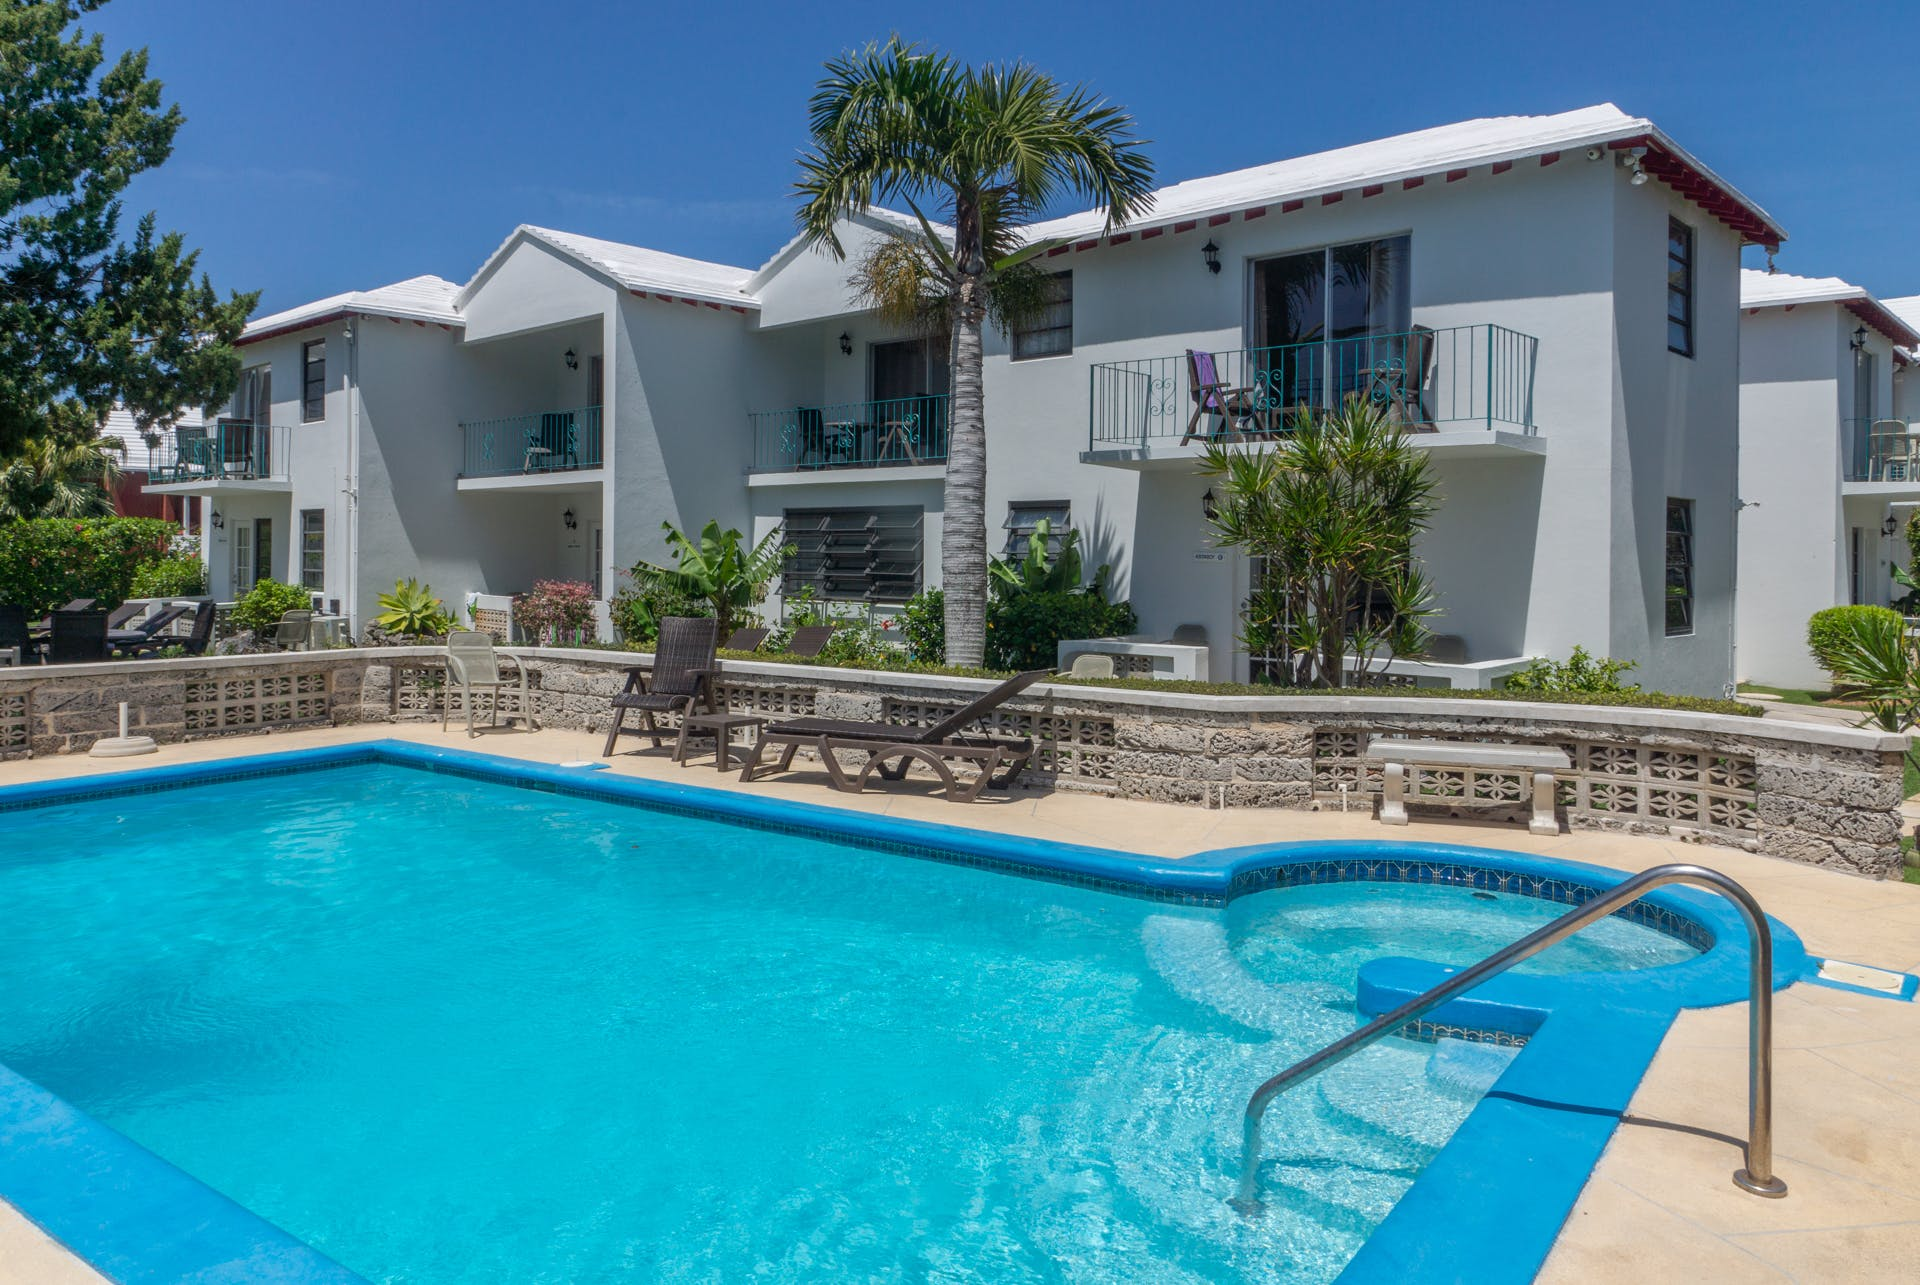 The Sandpiper Apartments on South Shore Road, Warwick, Bermuda 1